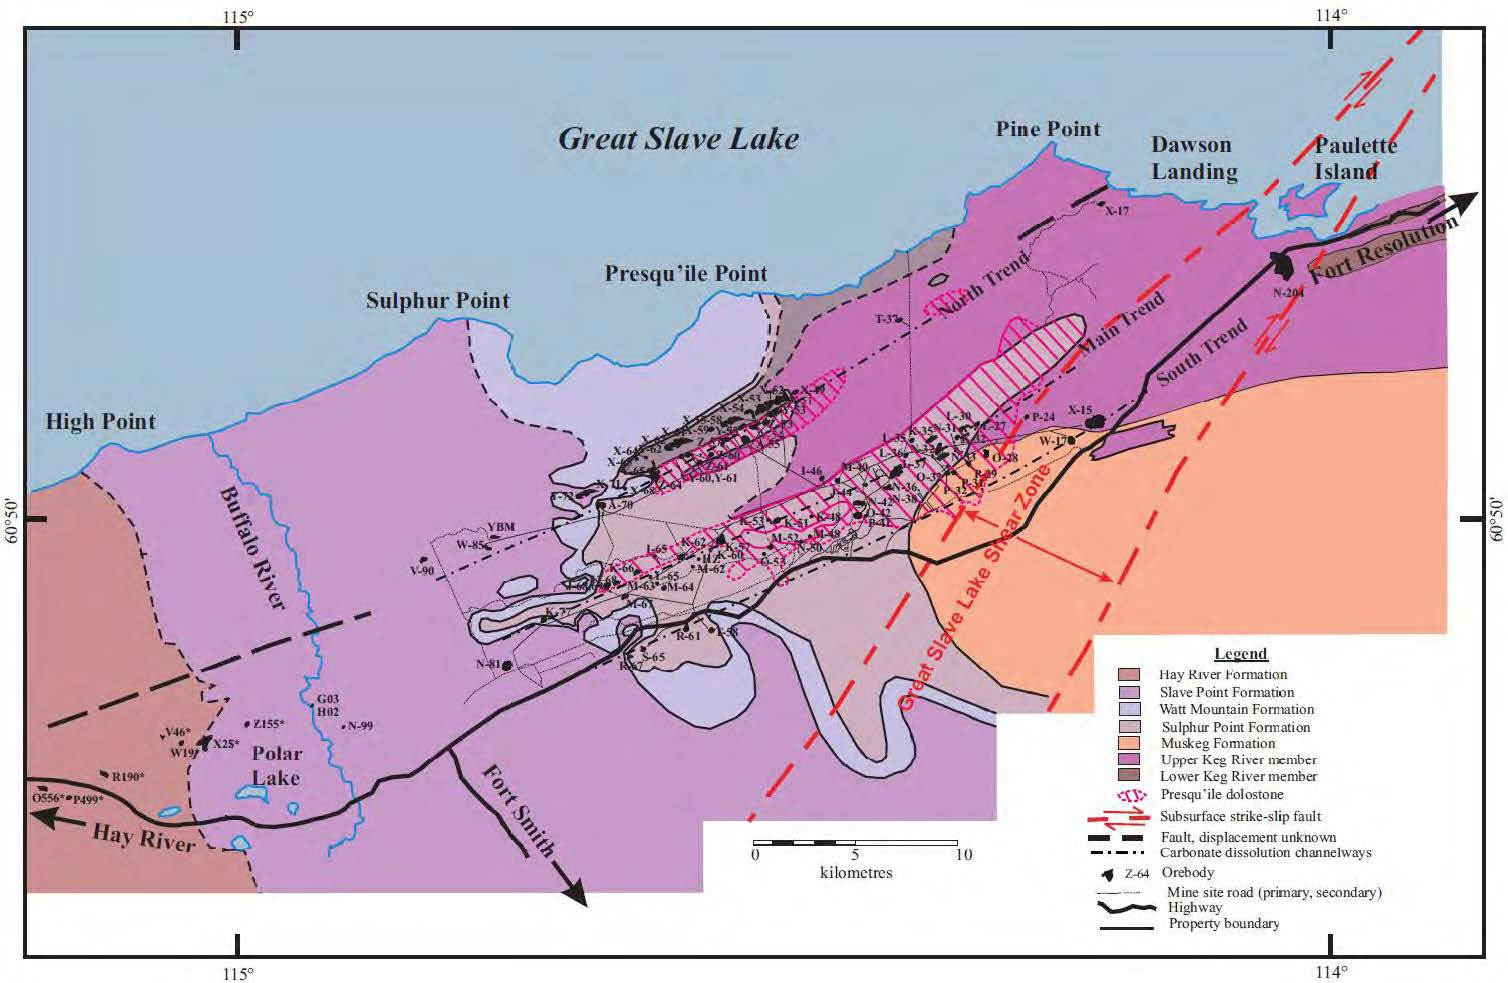 Sub-crop Geologic Map of Pine Point District.